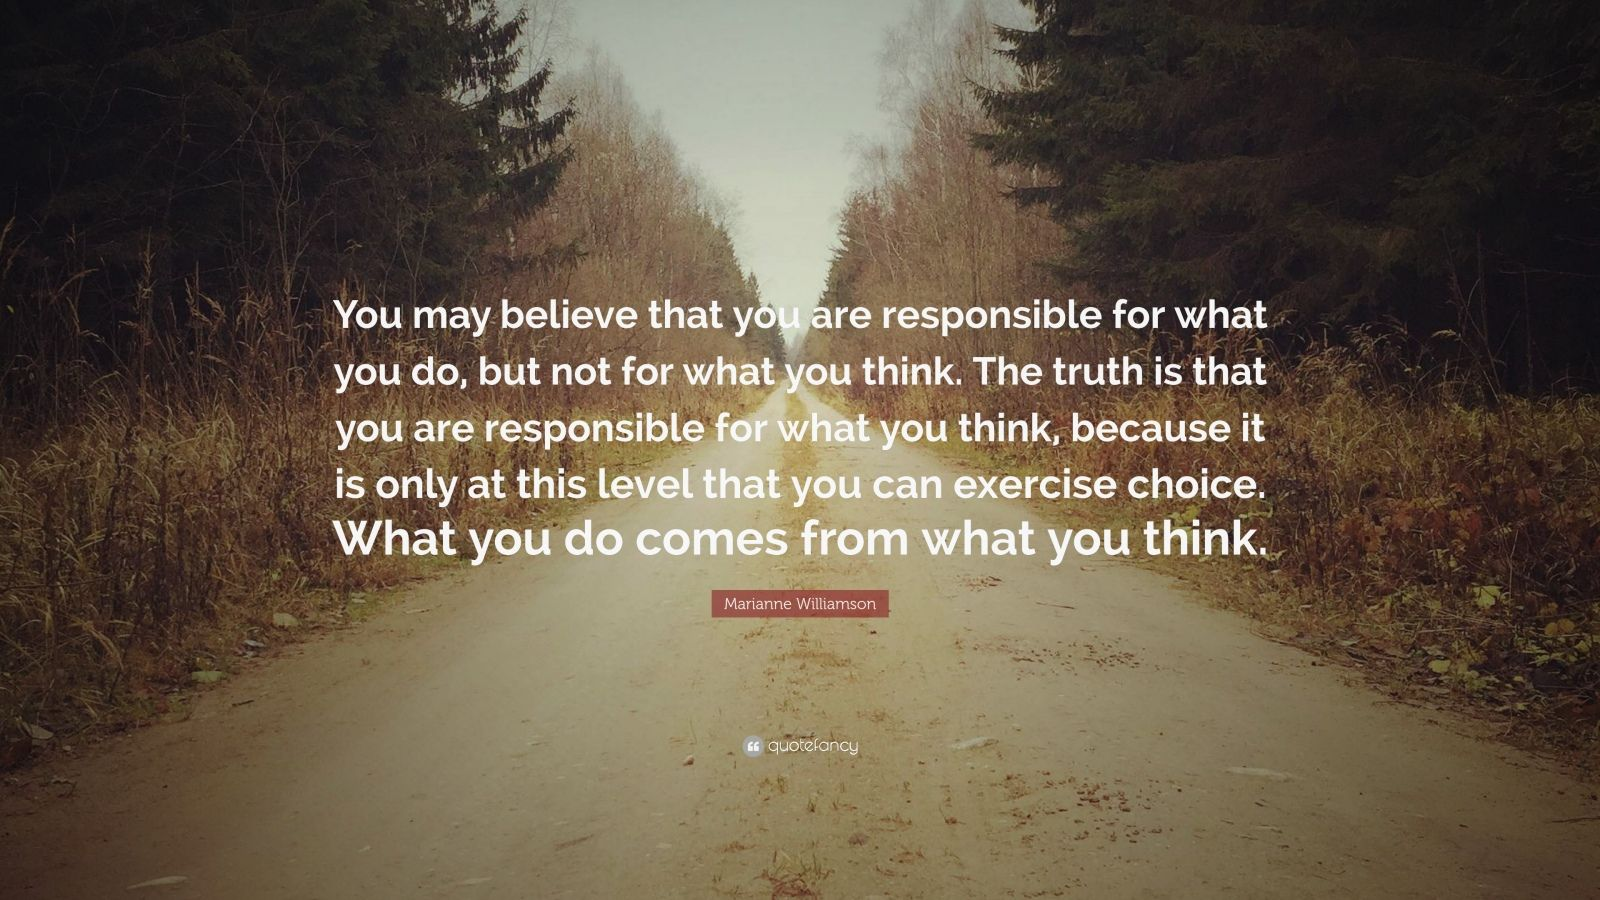 """Marianne Williamson Quote: """"You may believe that you are responsible for what you do, but not for what you think. The truth is that you are responsible for what you think, because it is only at this level that you can exercise choice. What you do comes from what you think."""""""